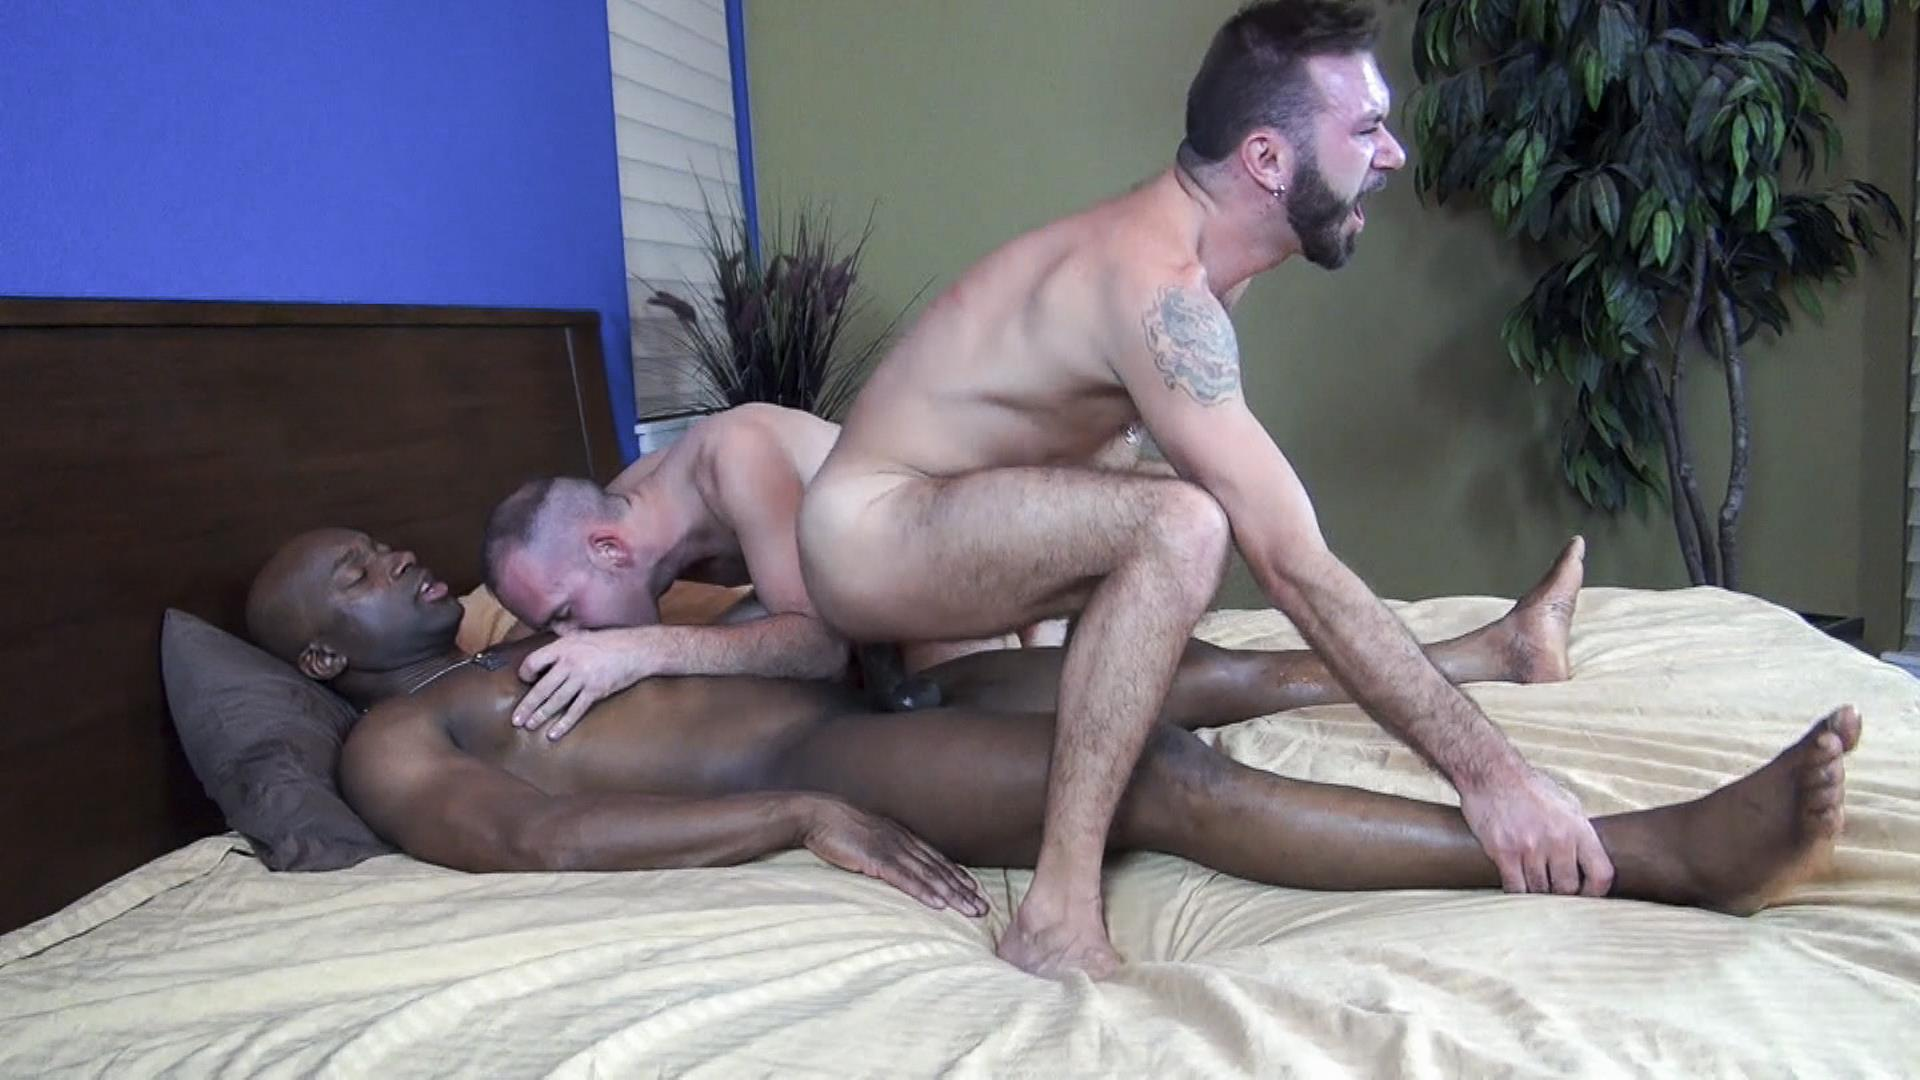 Nasty gay threesome sucking fucking